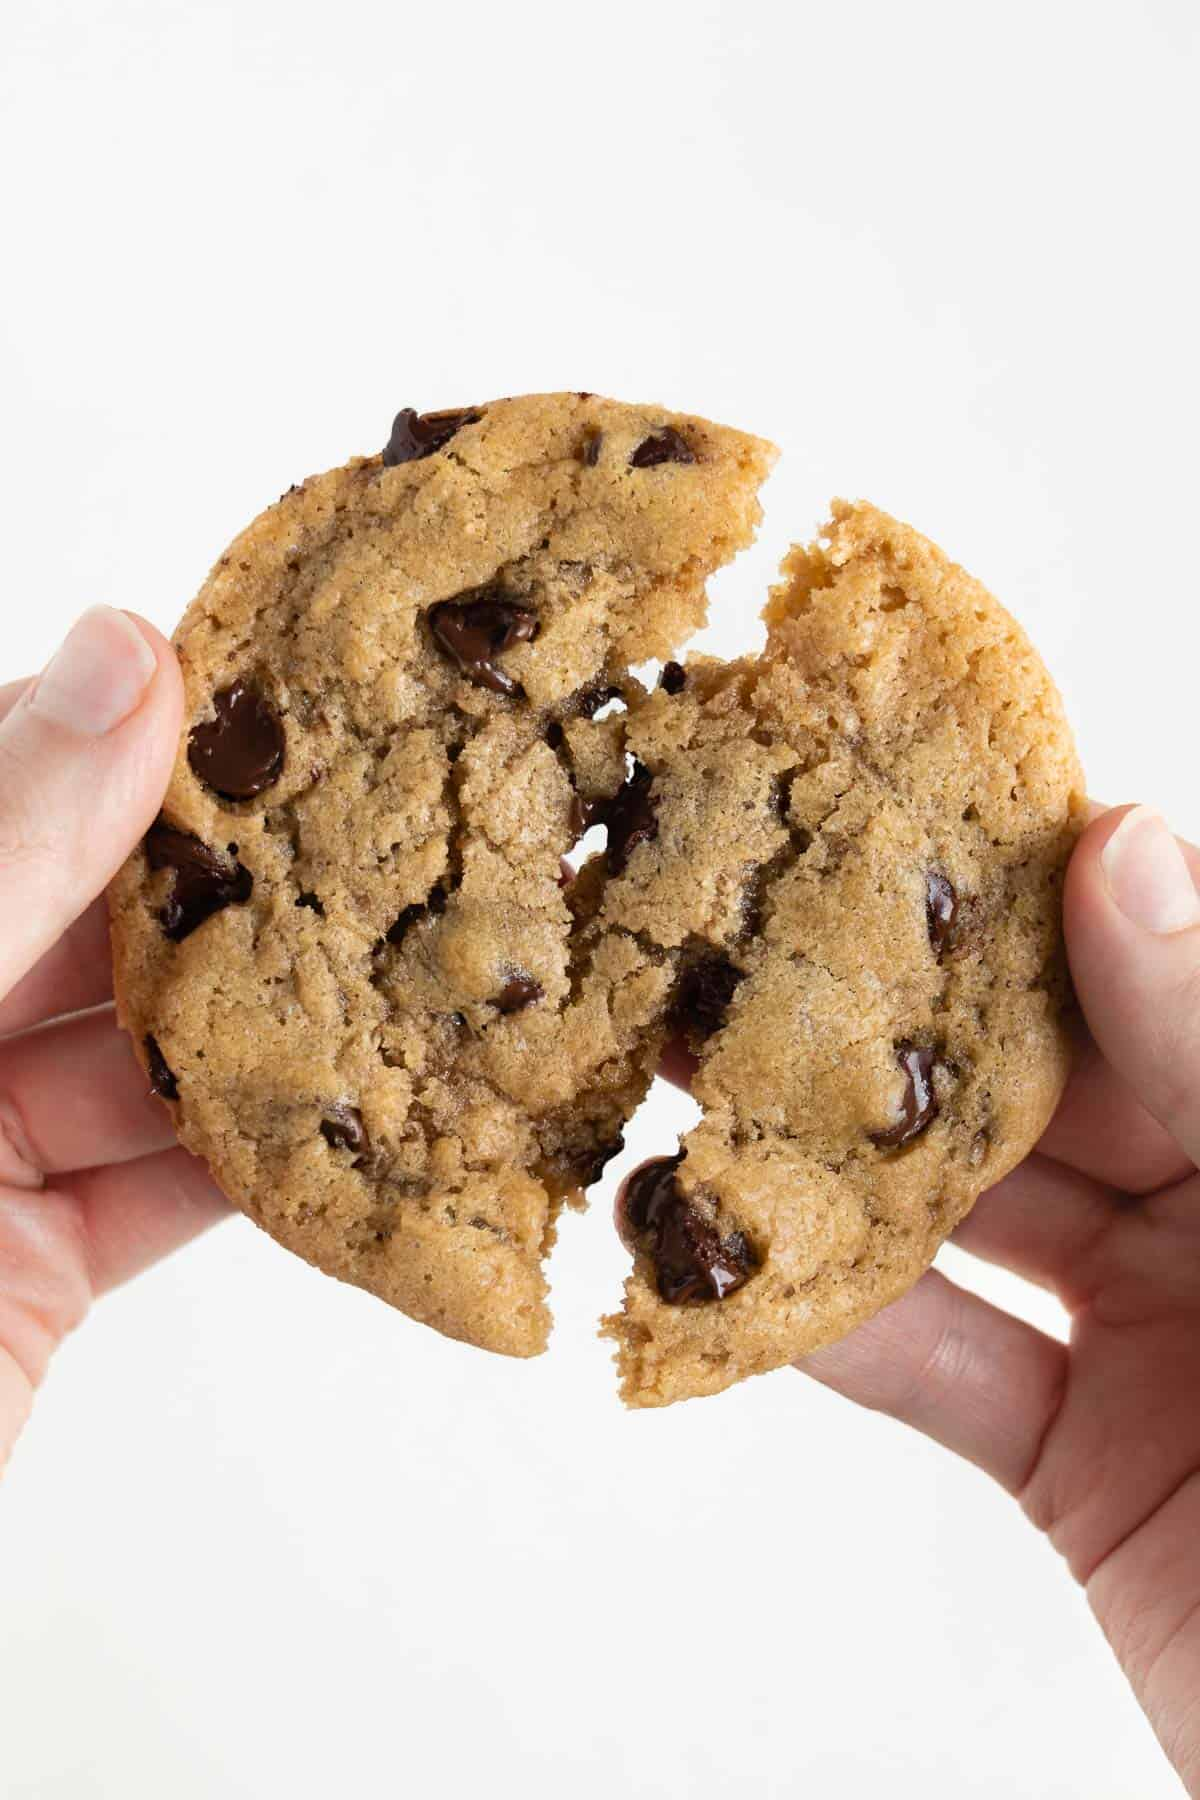 two hands pulling apart a warm and gooey vegan chocolate chip cookie